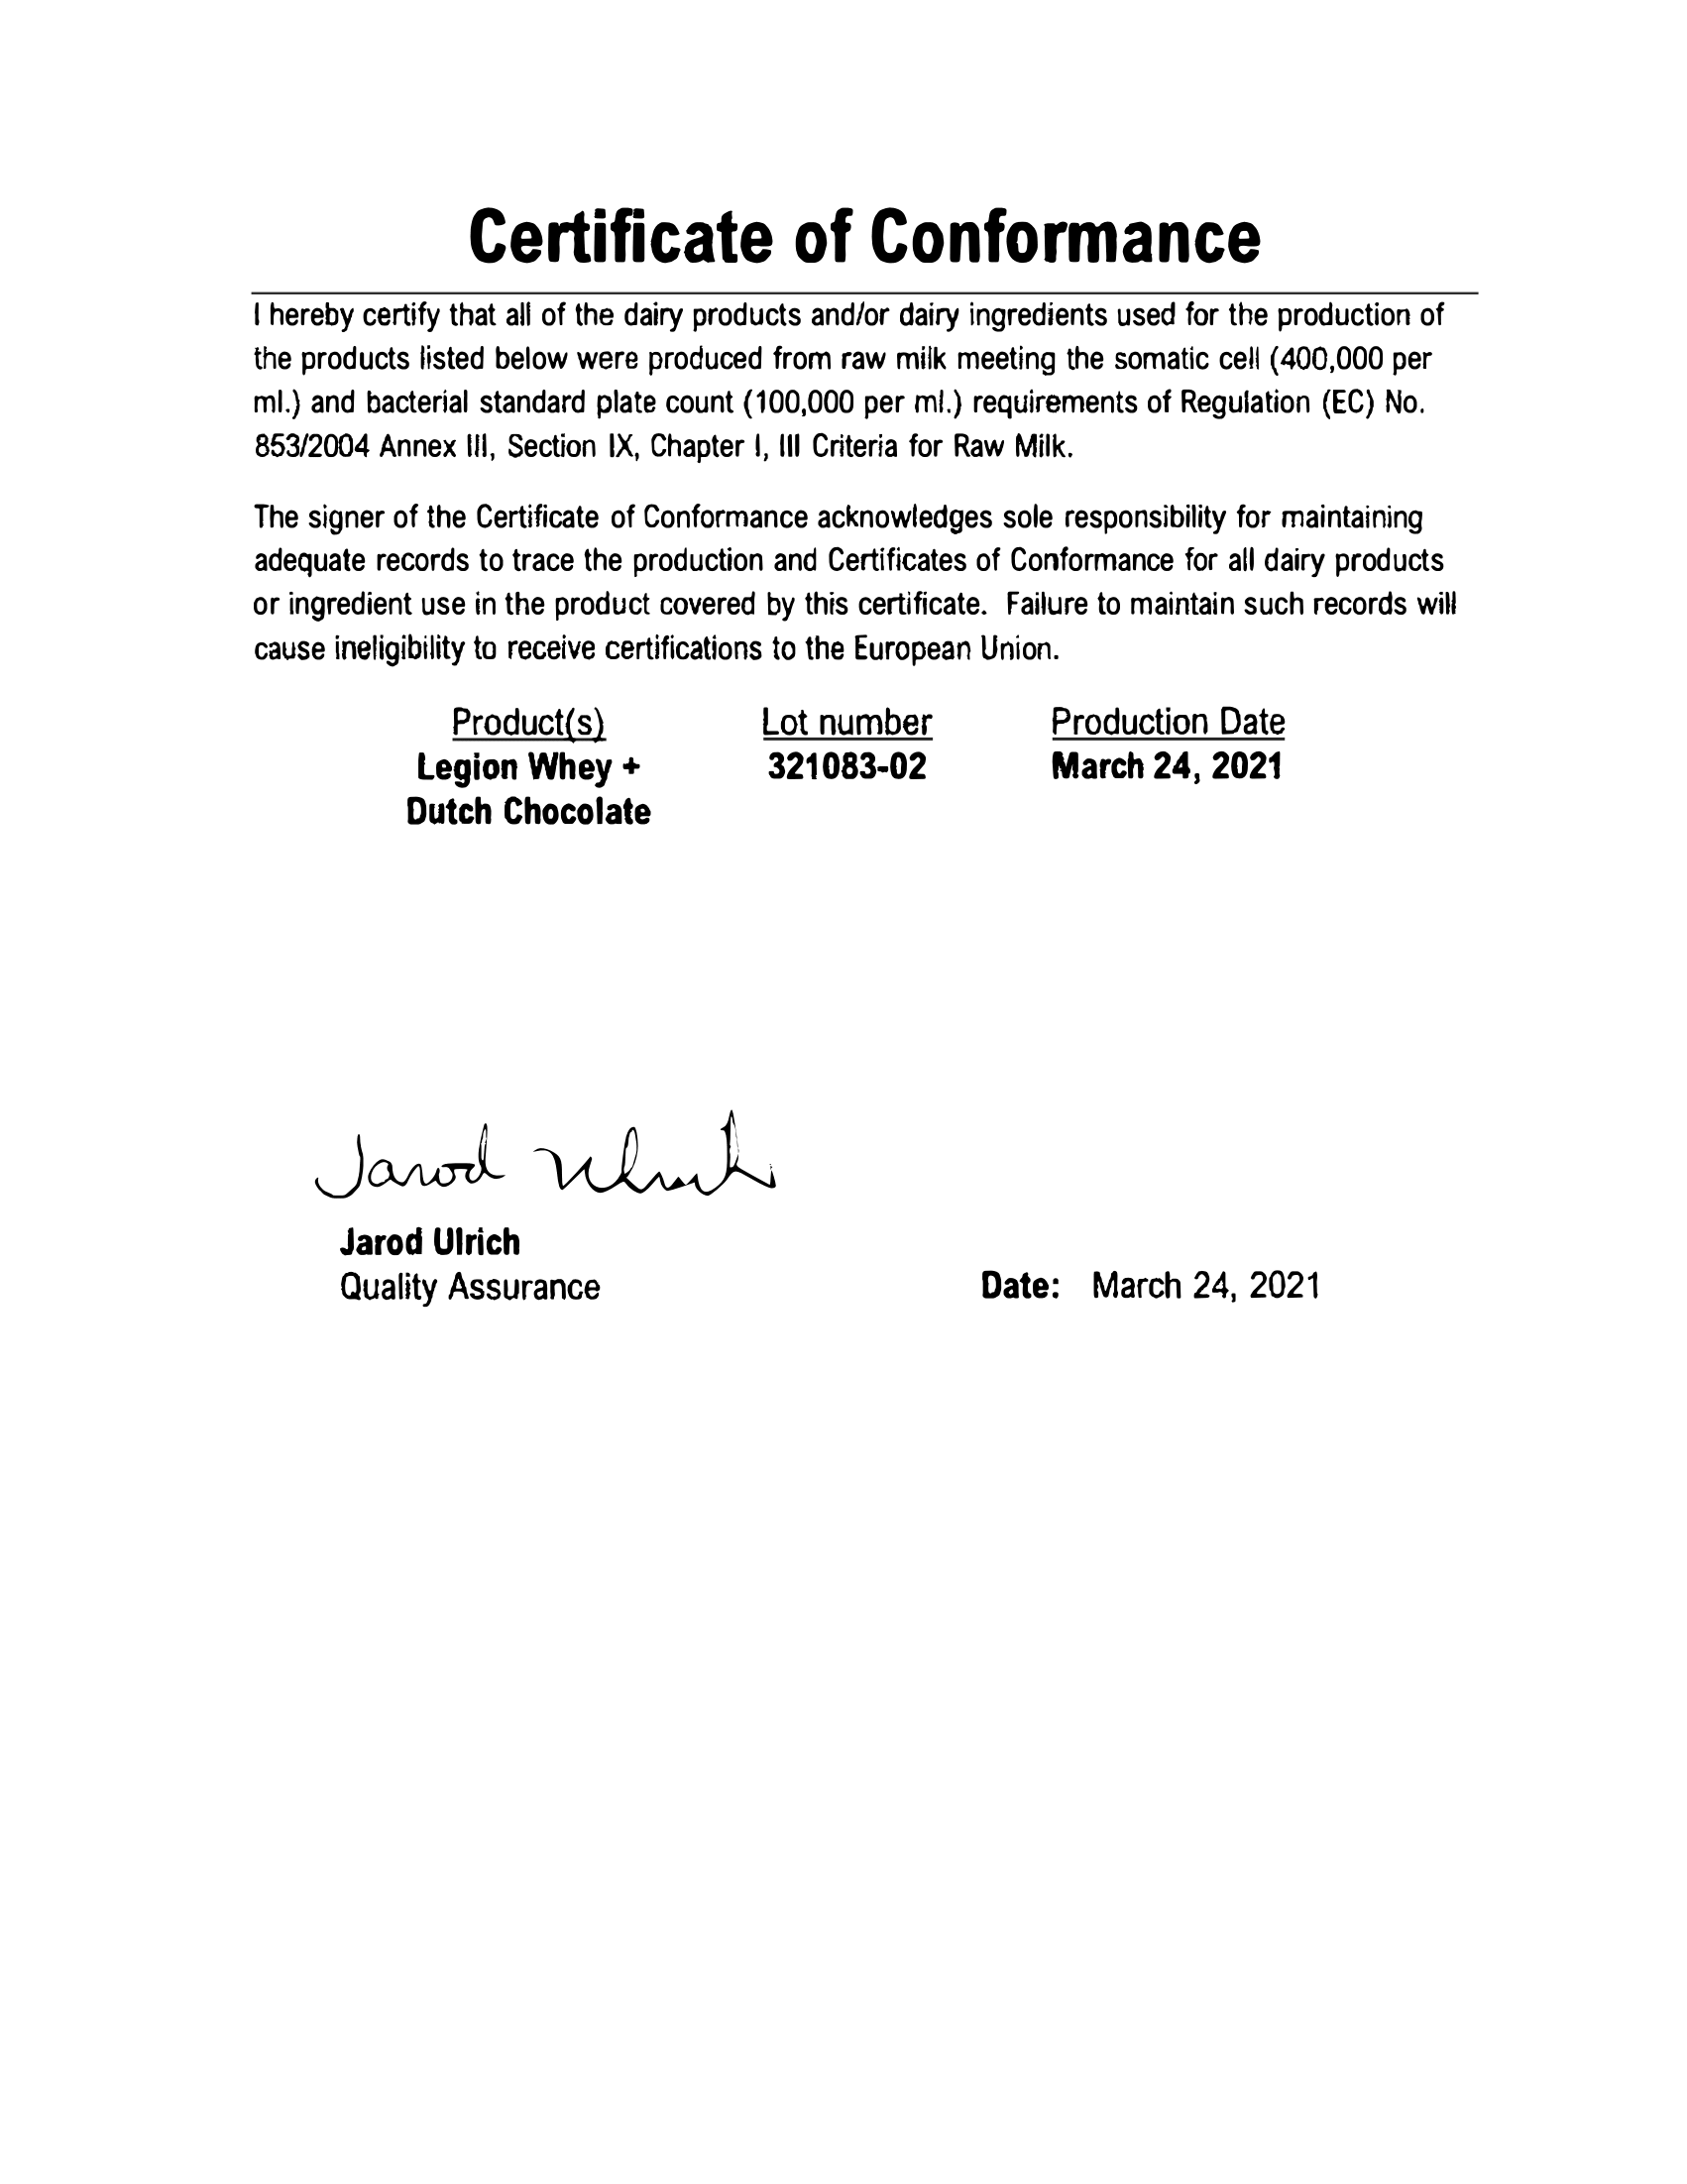 Whey+ Lab Test Certificate Page 2